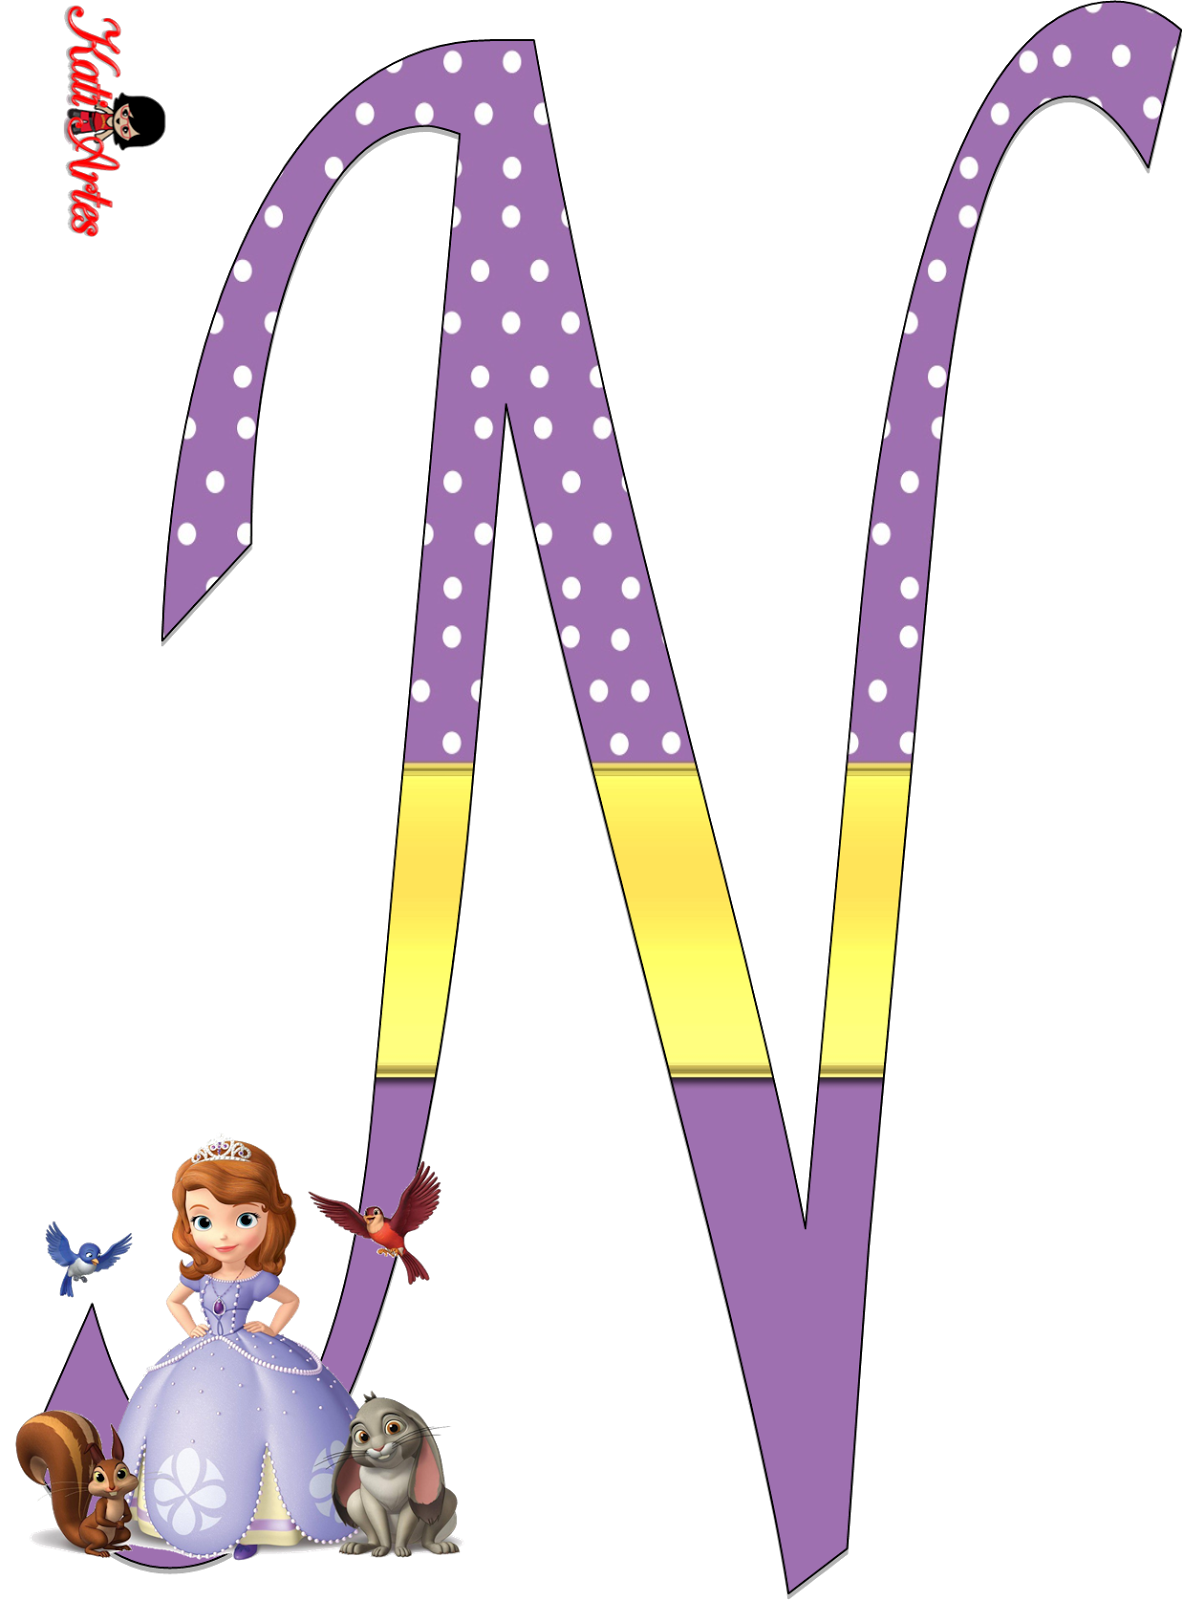 Literacy clipart alphabet. Sofia the first alfabeto